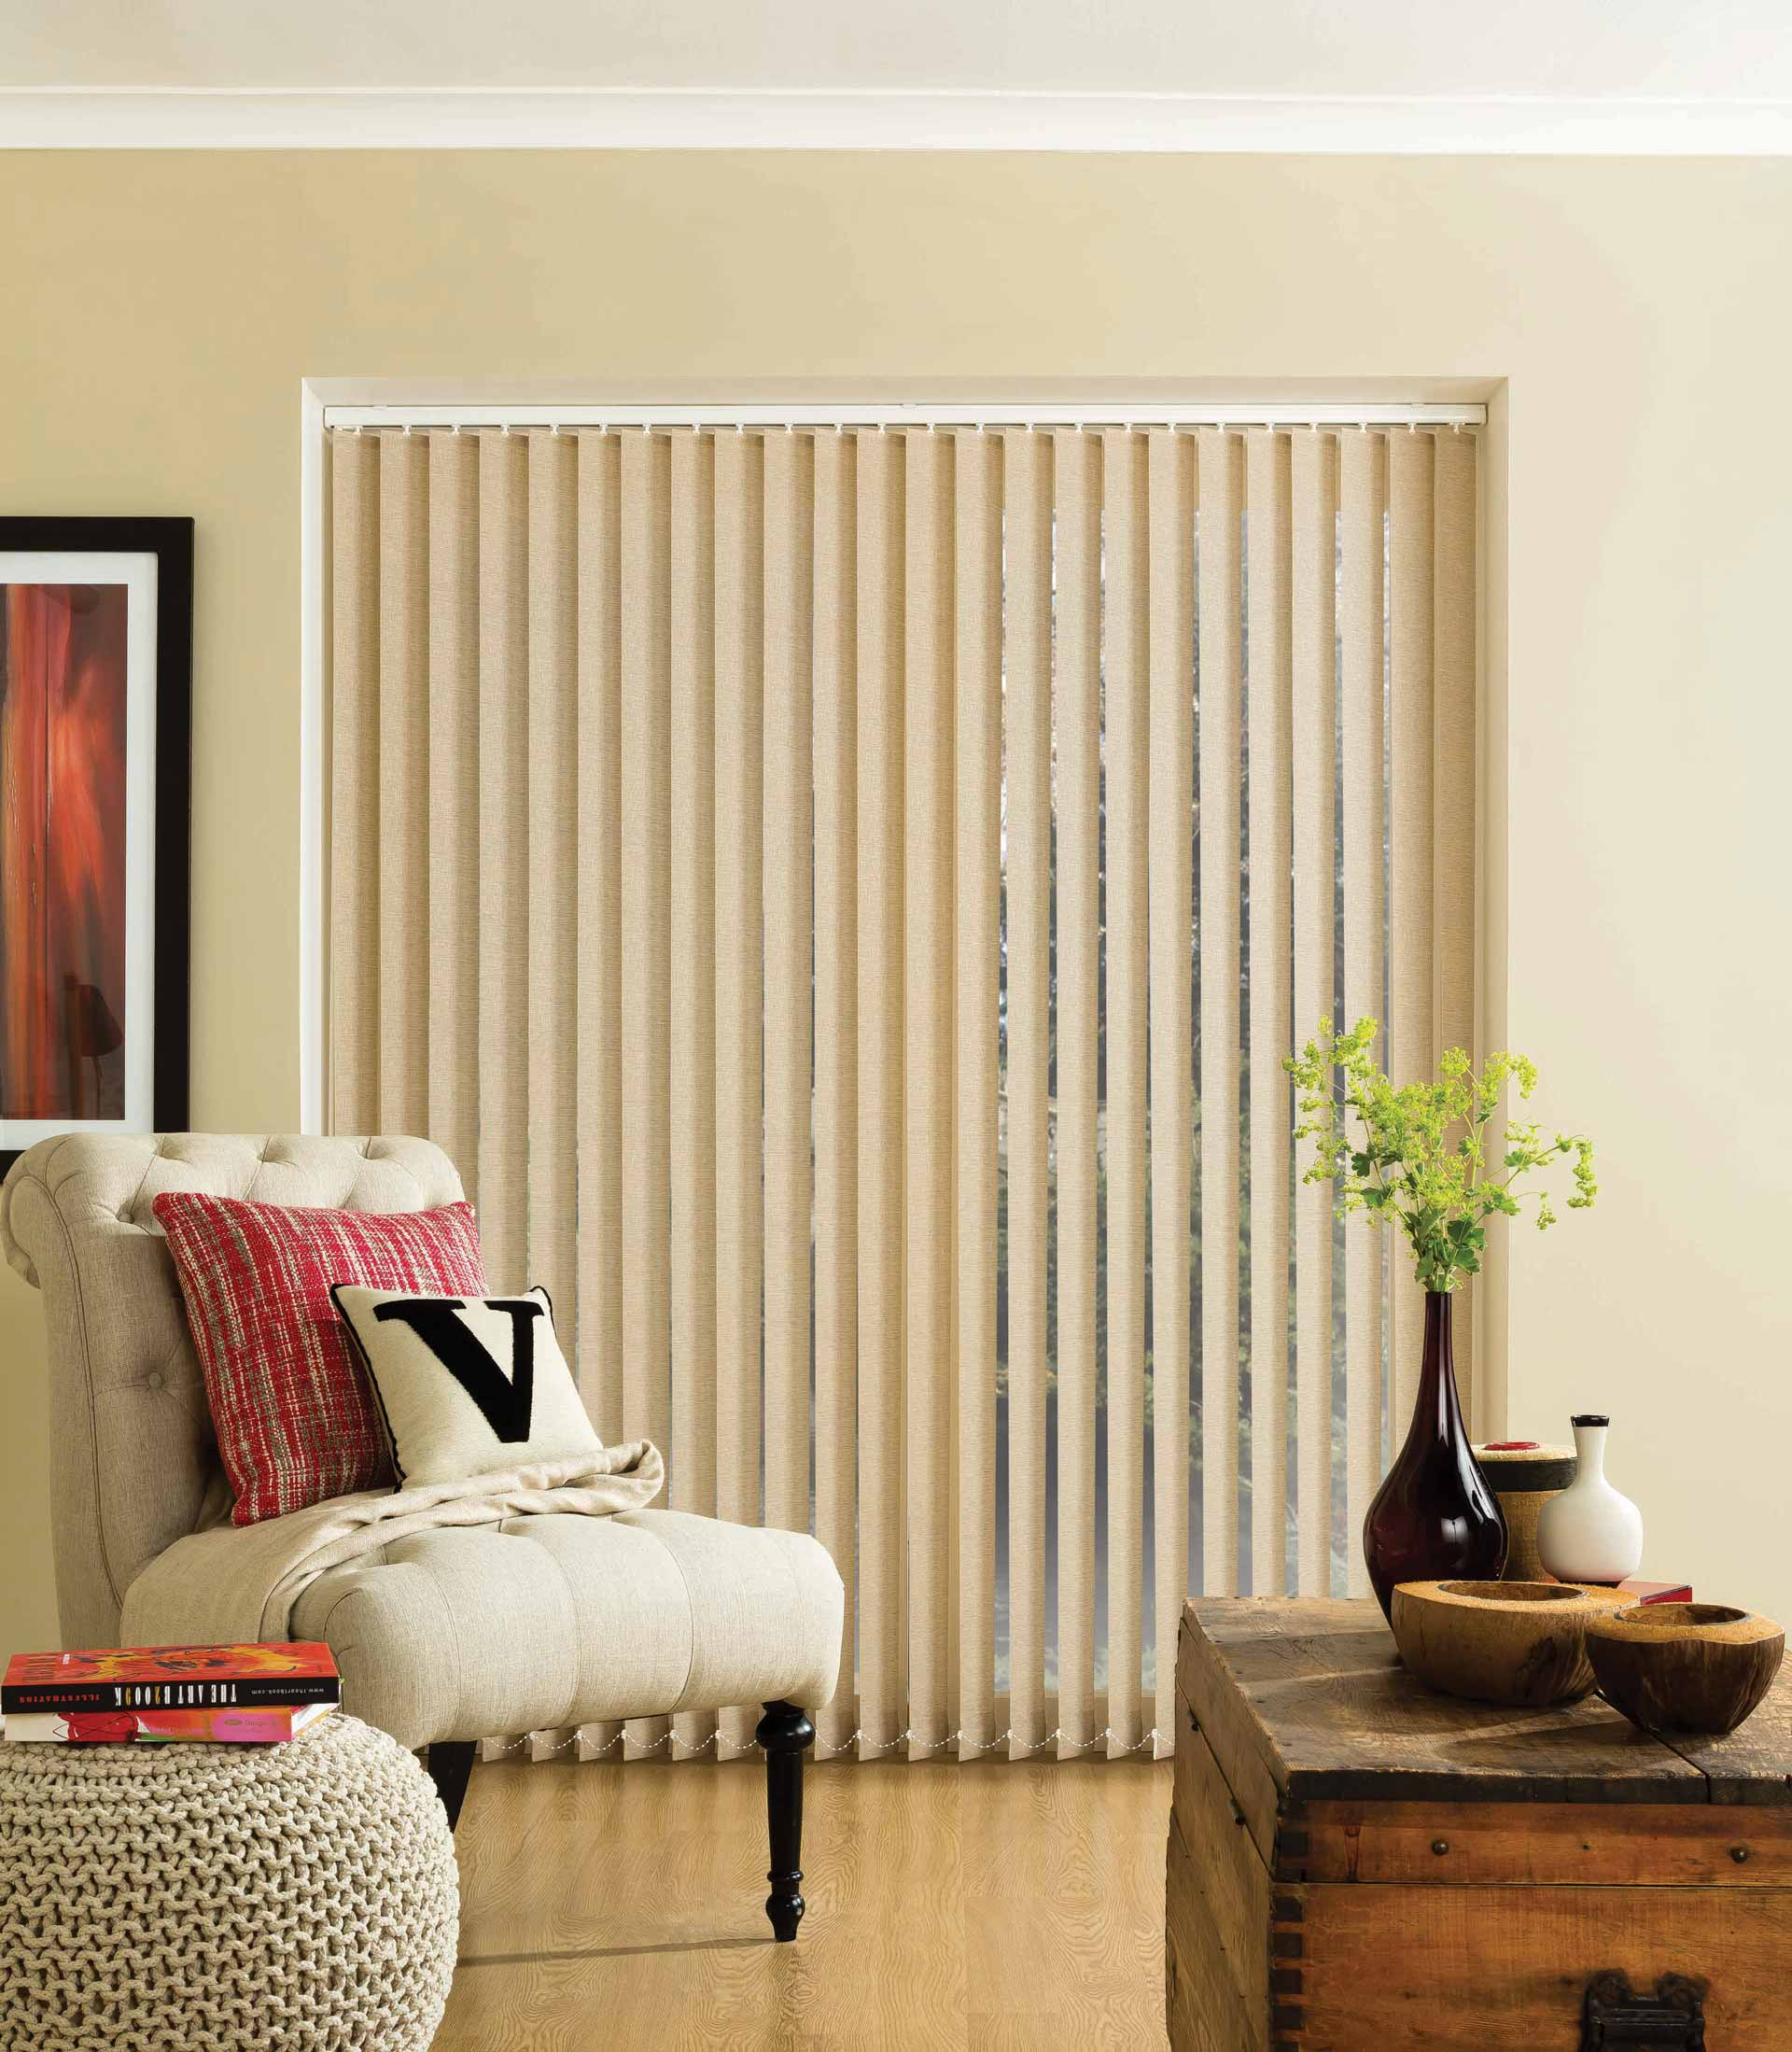 Parchment vertical blinds